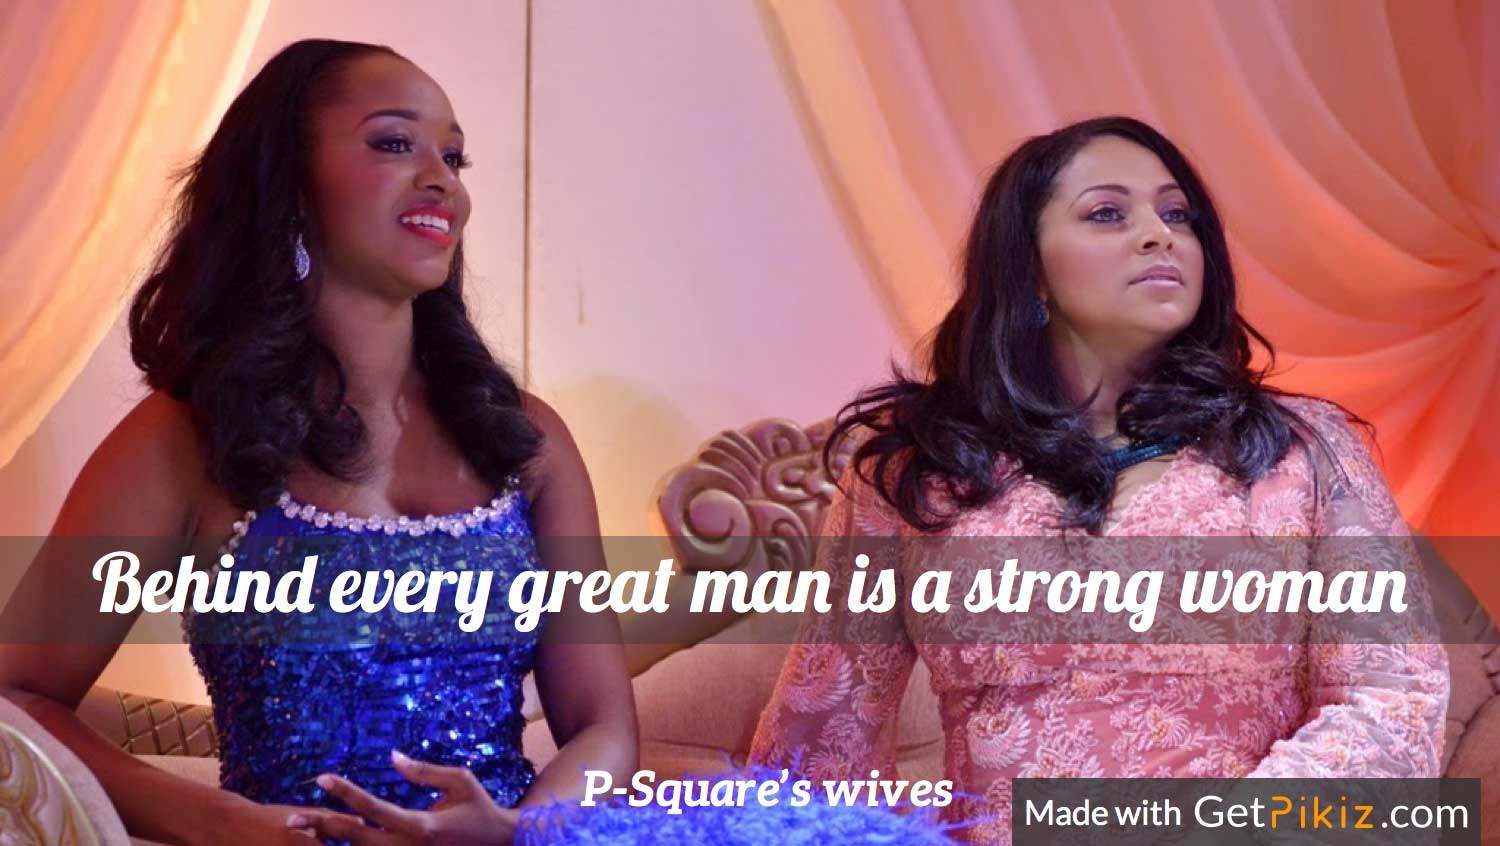 Behind every great man is a strong woman - P-Square's wives